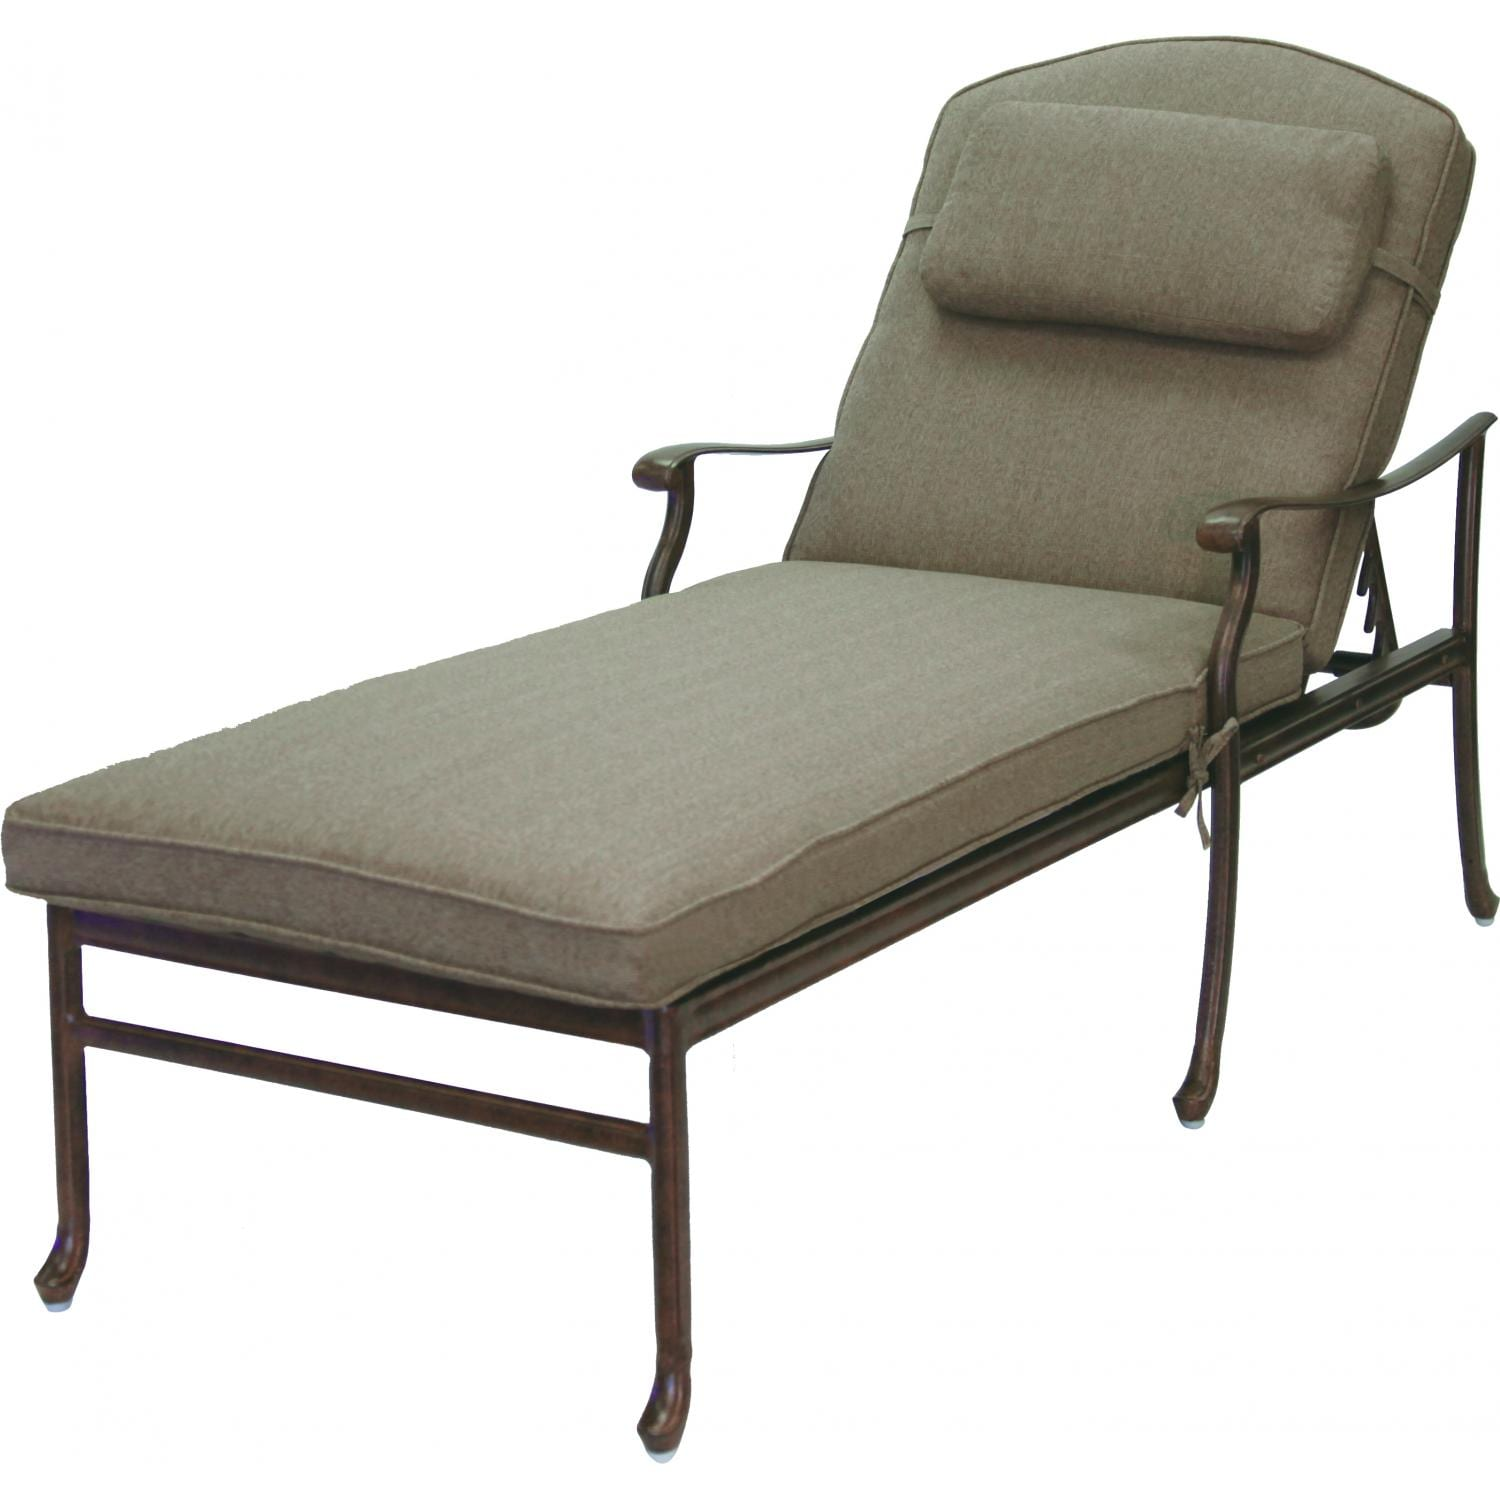 Darlee Sedona Cast Aluminum Patio Chaise Lounge